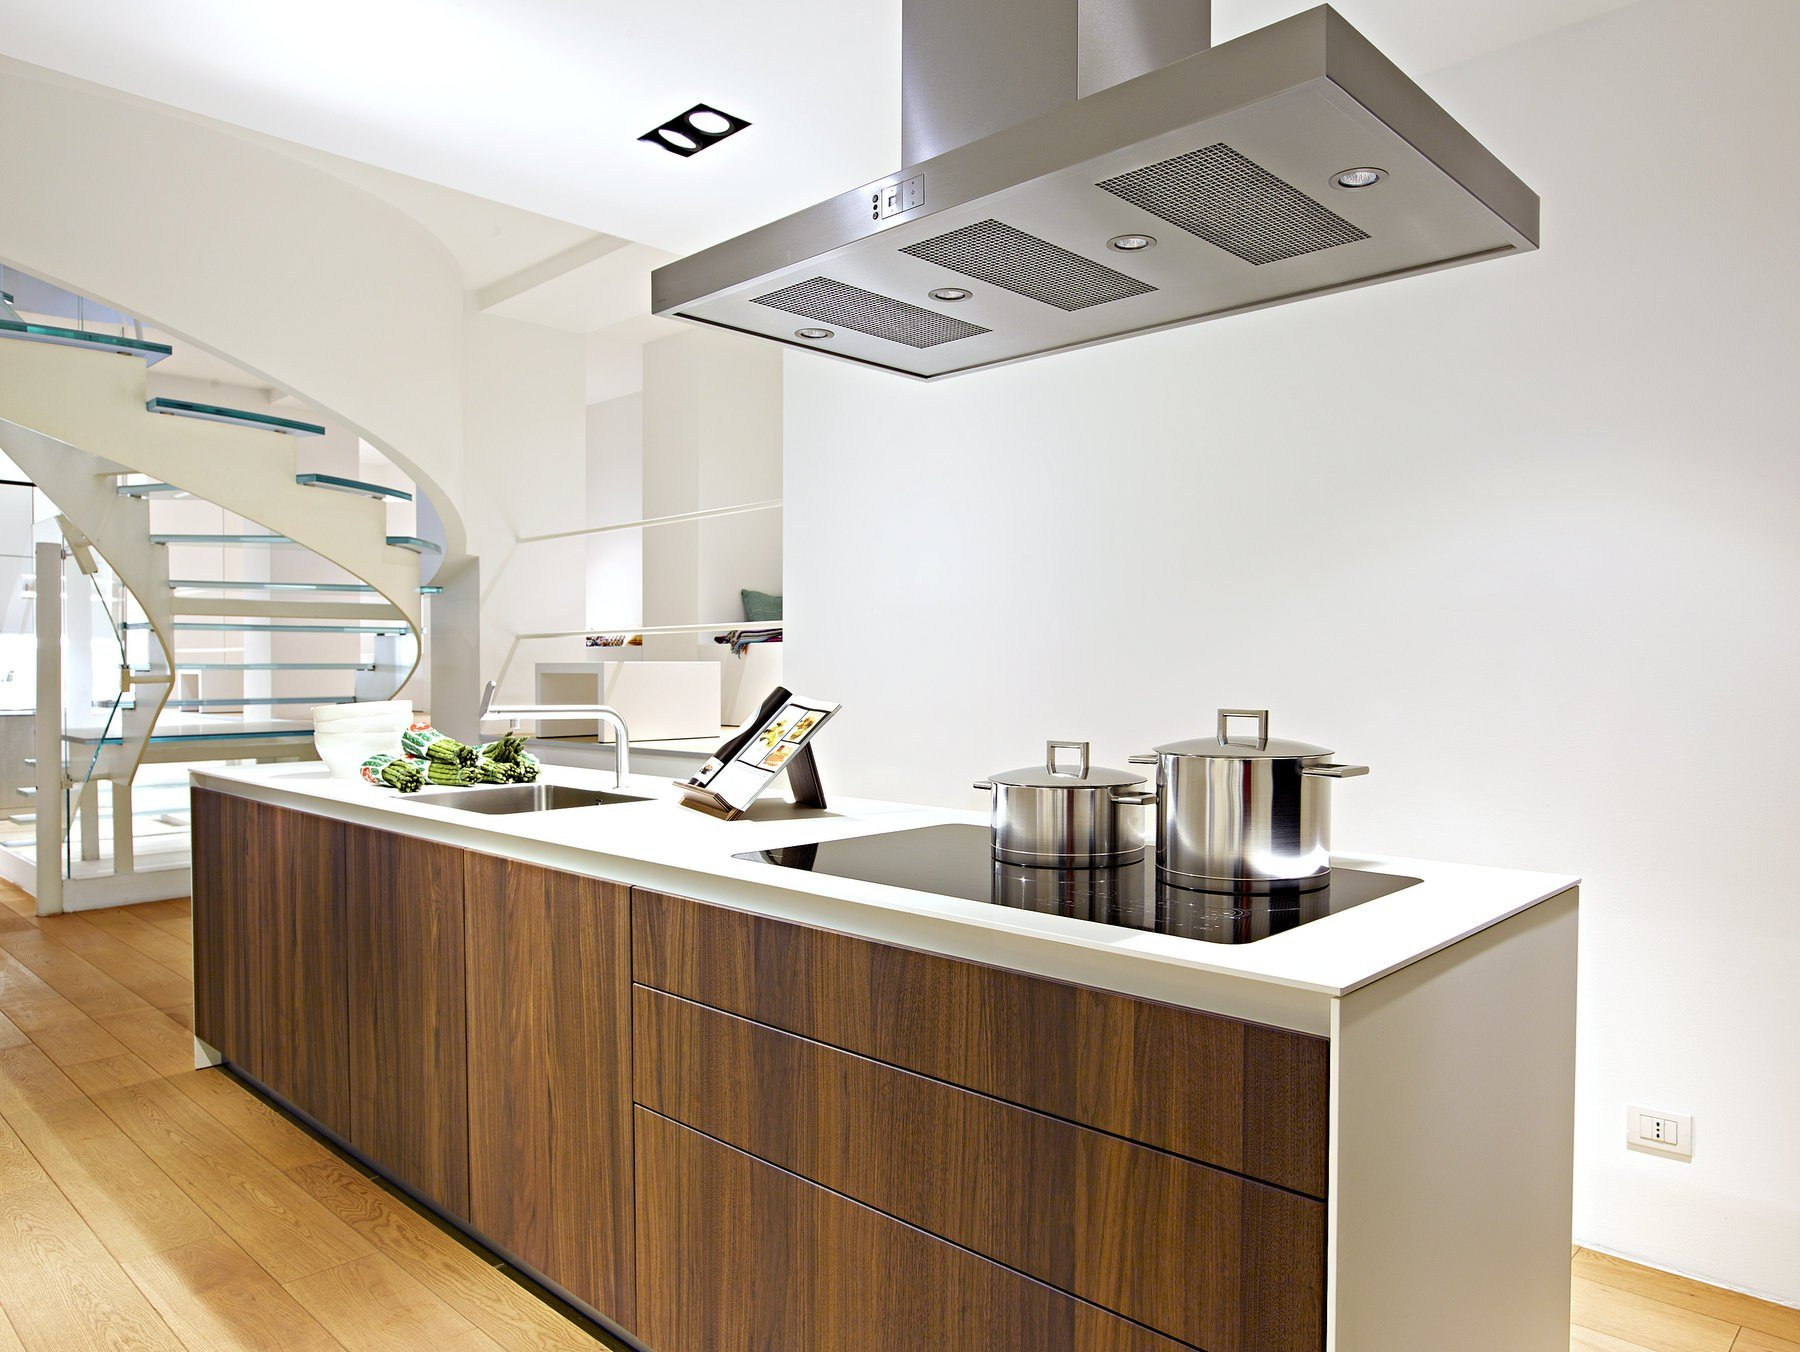 b3 | wooden kitchenbulthaup